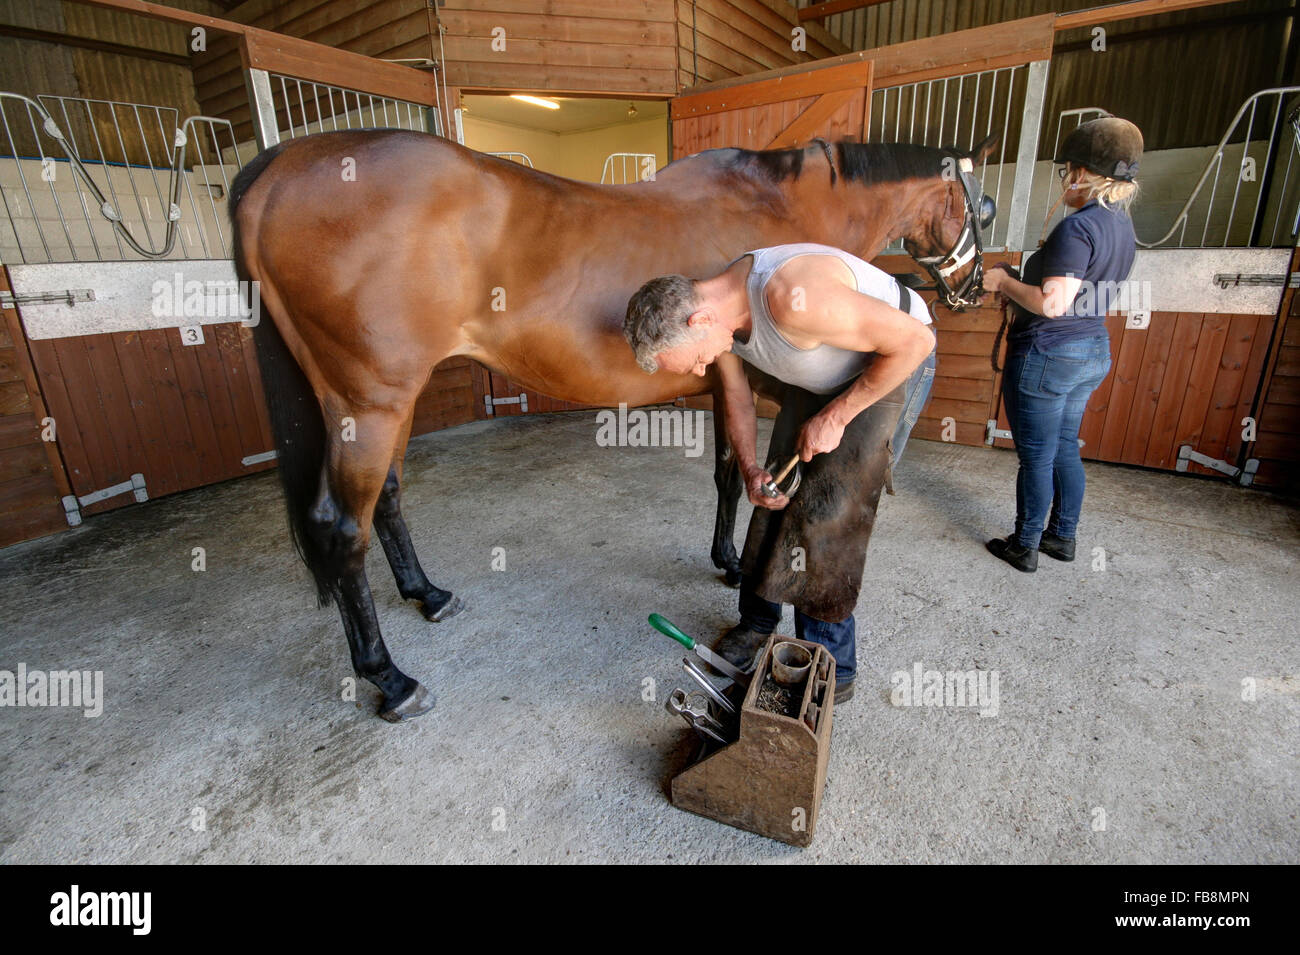 Man putting horse shoe on a horse at stables - Stock Image